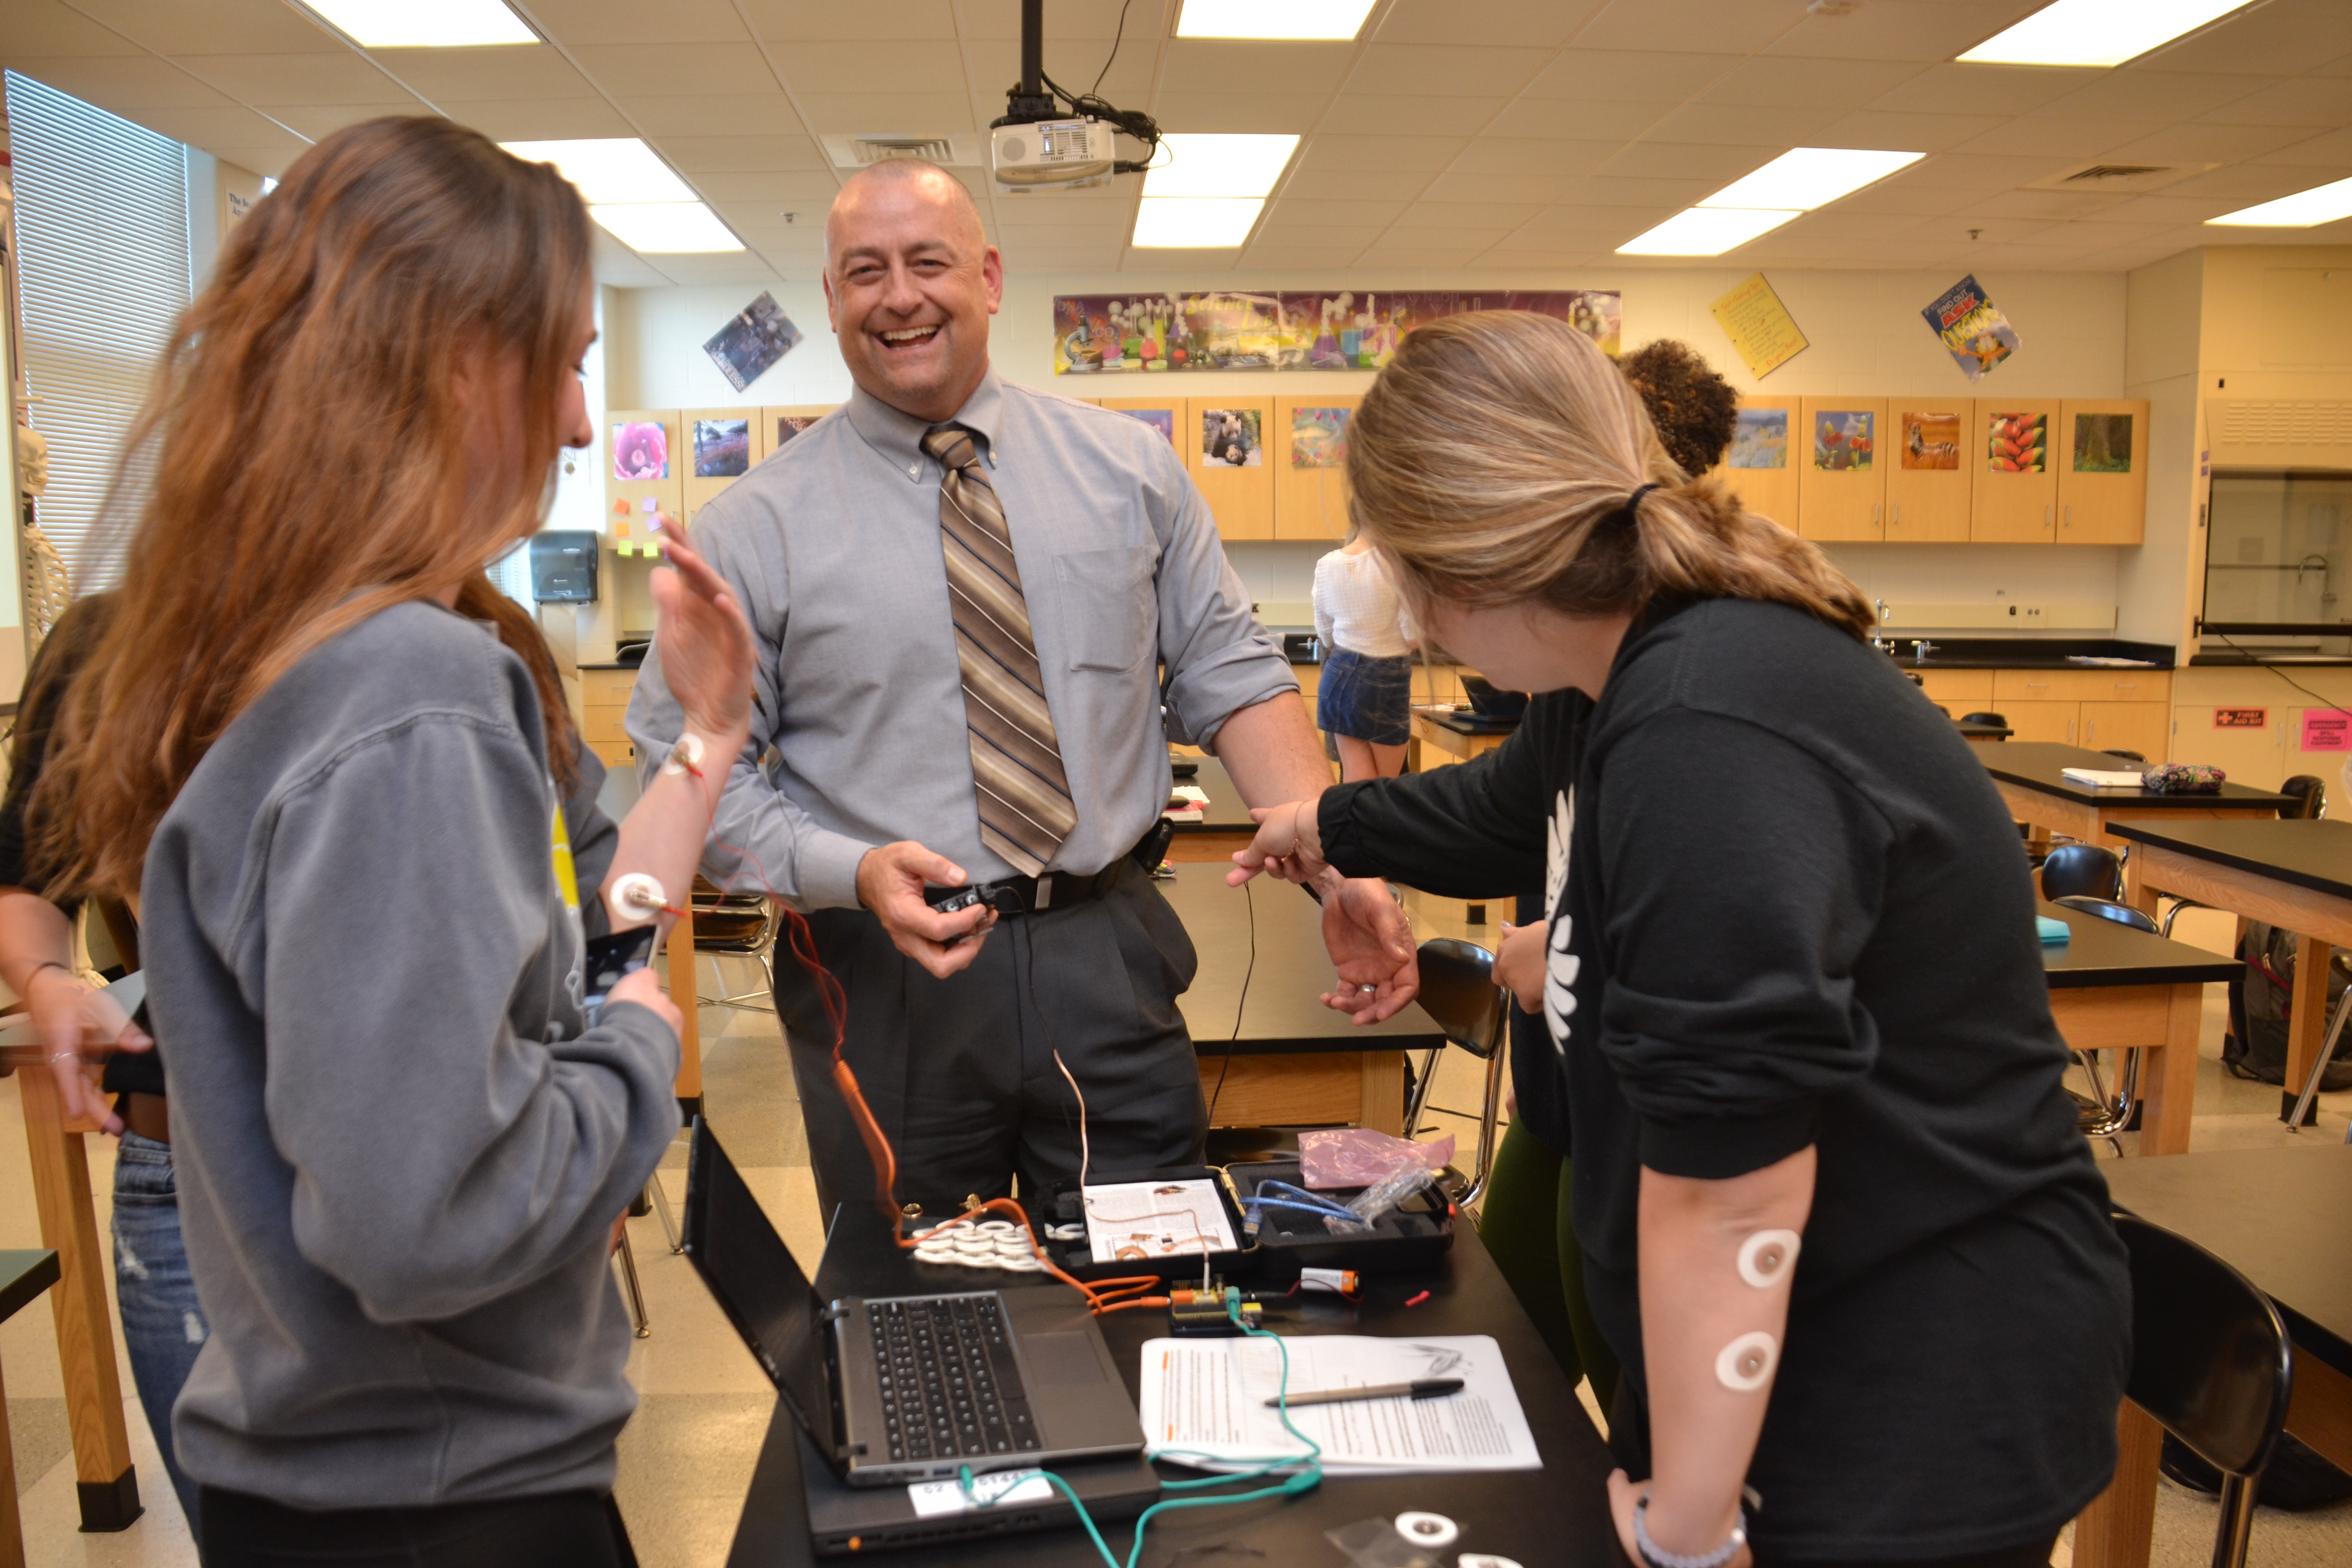 Principal Todd Spinner shares a laugh with students